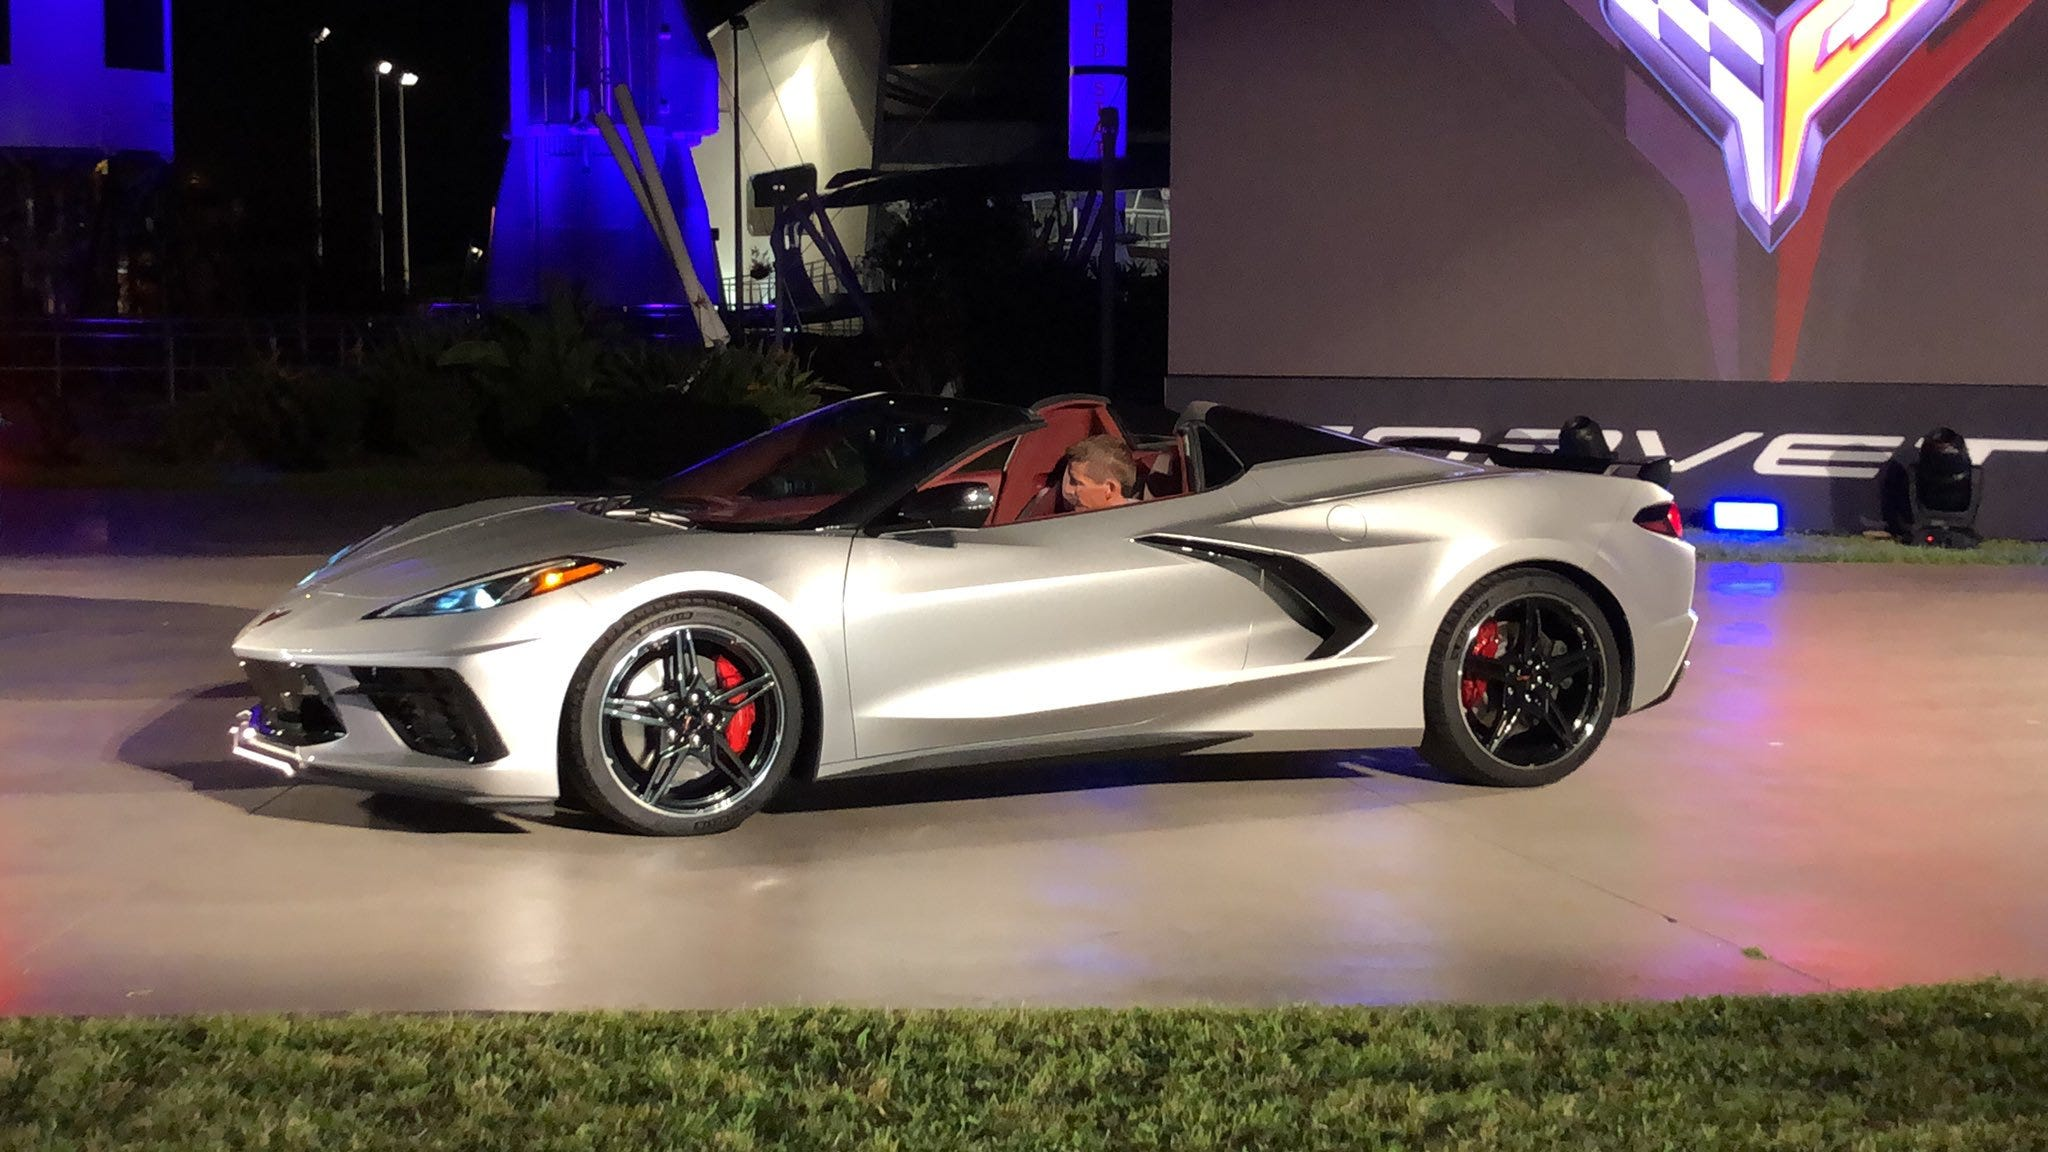 22 Gallery of 2020 Chevrolet Corvette Images Specs and Review for 2020 Chevrolet Corvette Images